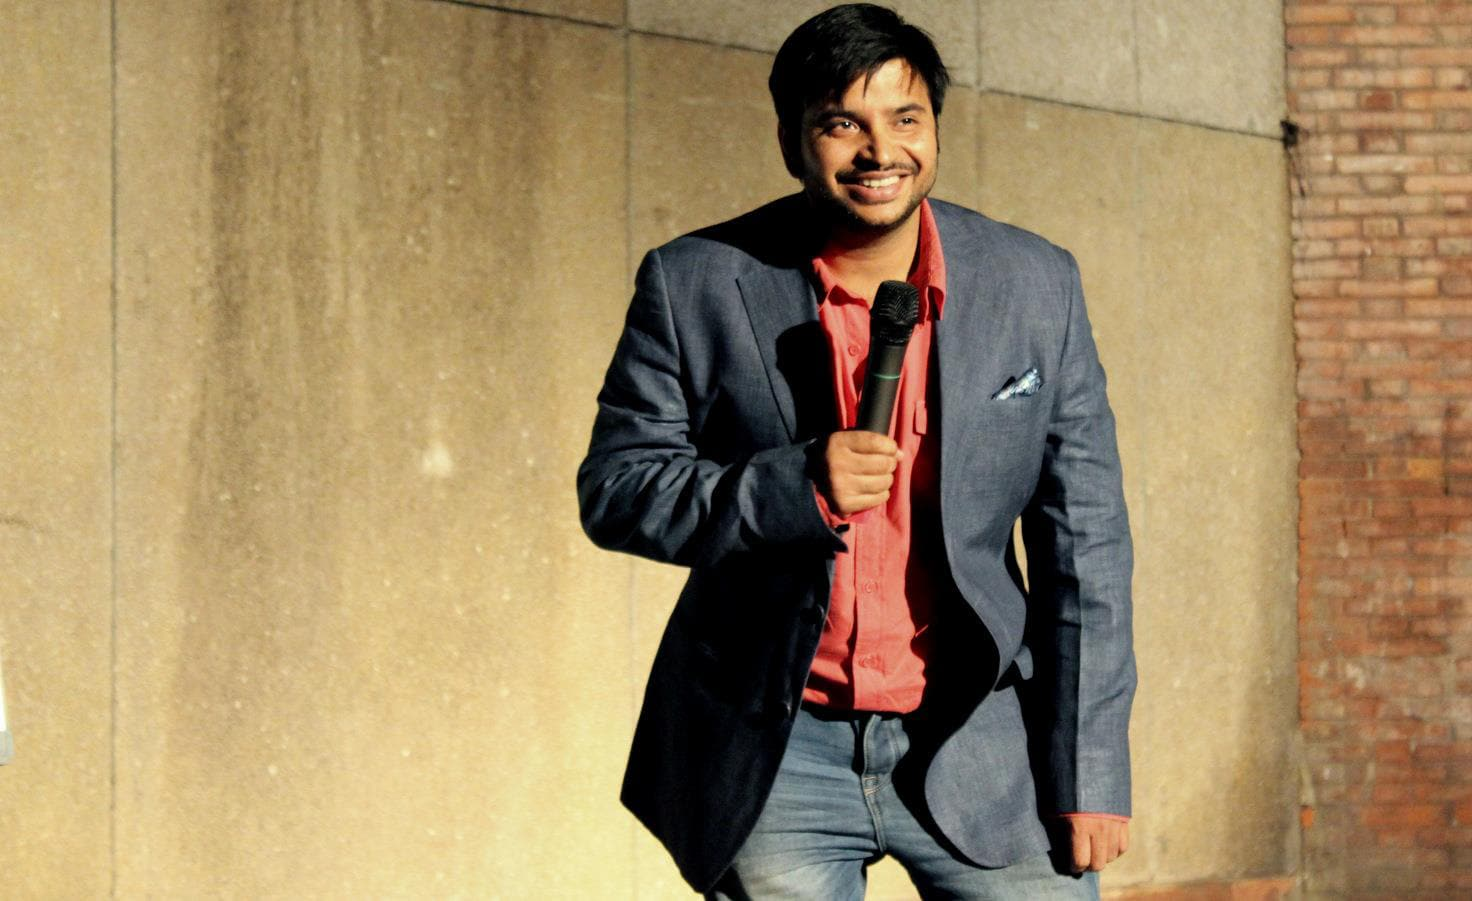 Simple Exhibition Stand Up Comedy : Sundeep sharma comedy artists entertainment